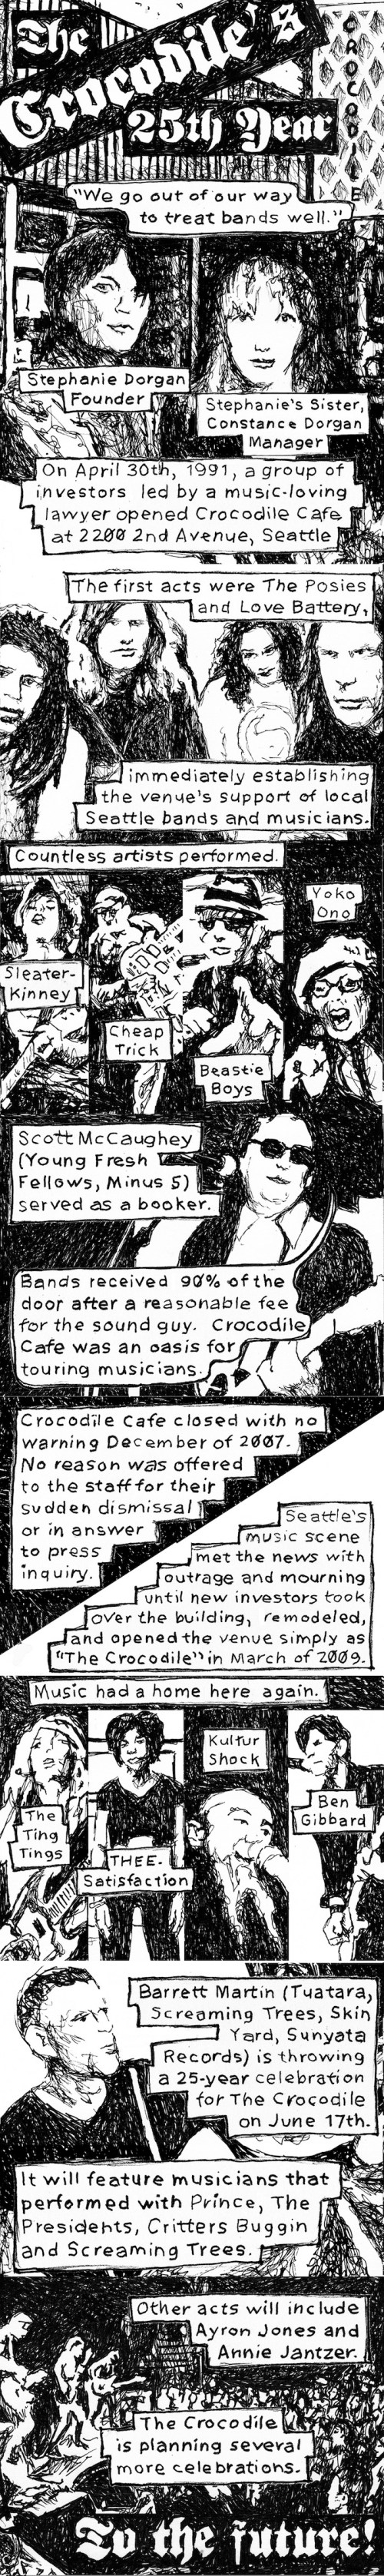 Noel Franklin's tribute to The Crocodile in Seattle Weekly